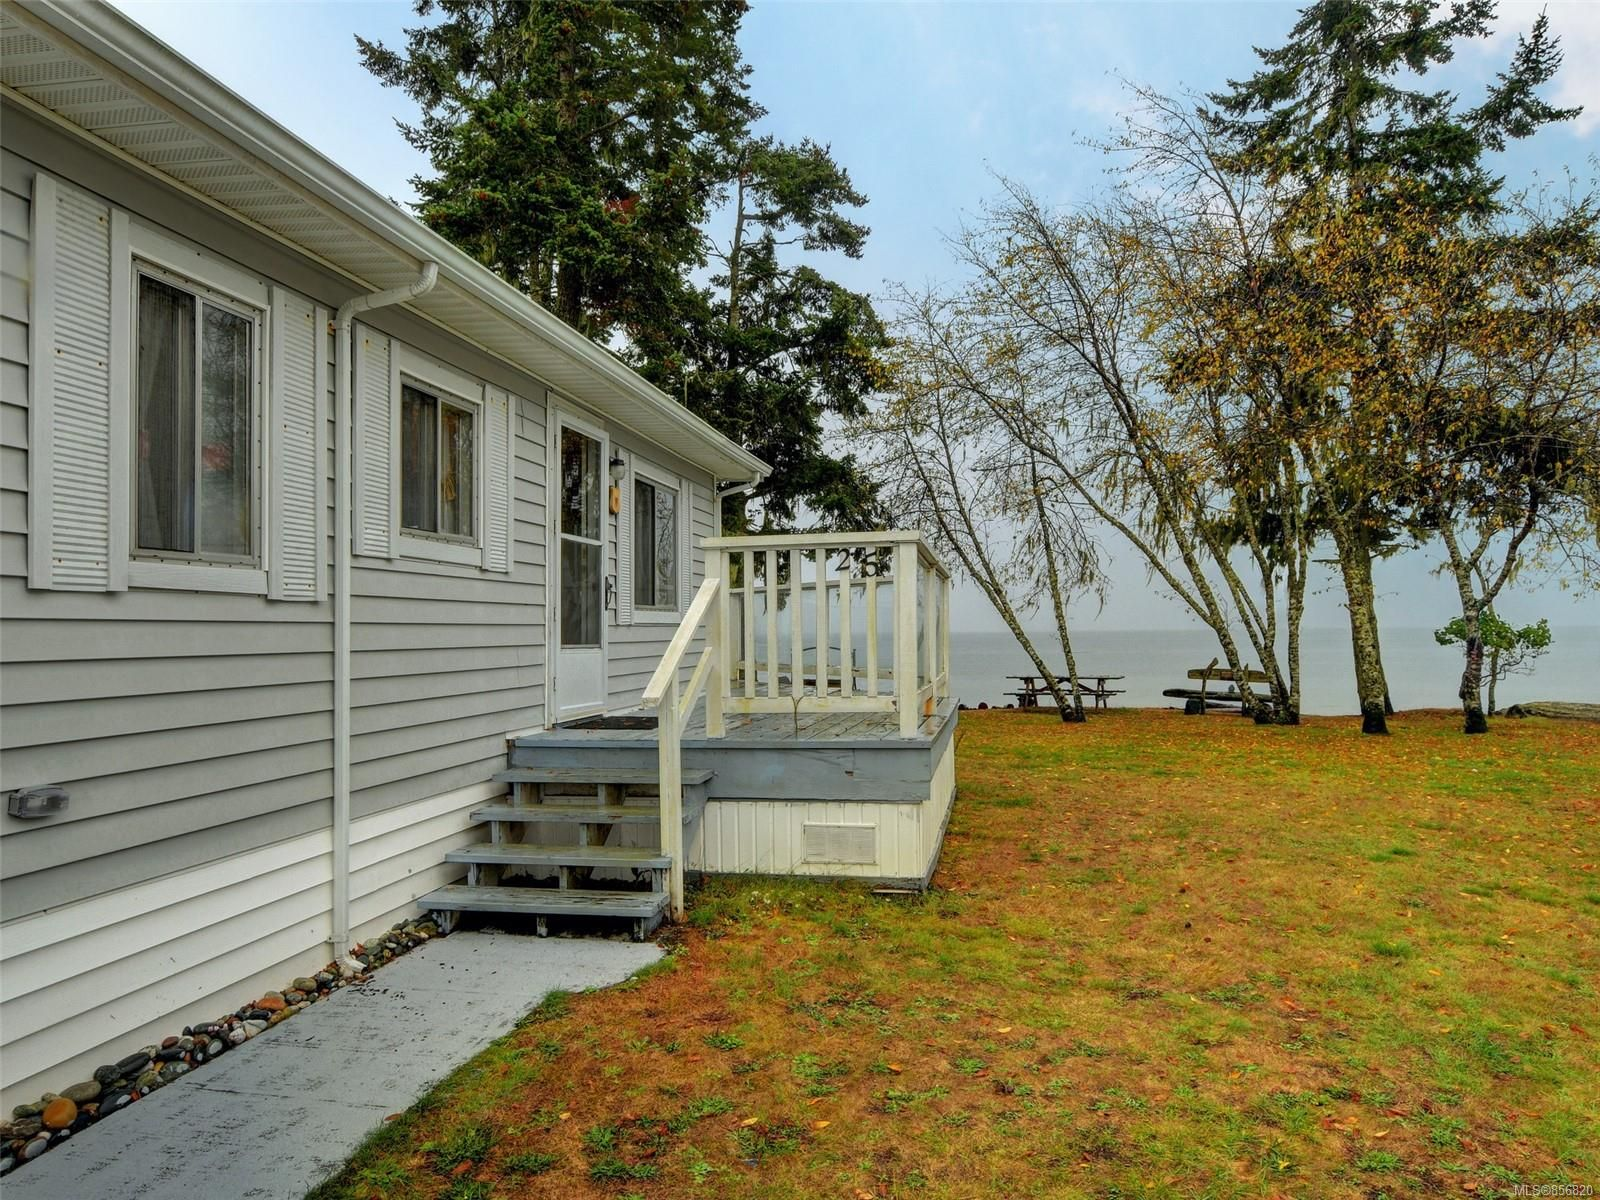 Photo 21: Photos: 25 7871 West Coast Rd in : Sk Kemp Lake Manufactured Home for sale (Sooke)  : MLS®# 856820